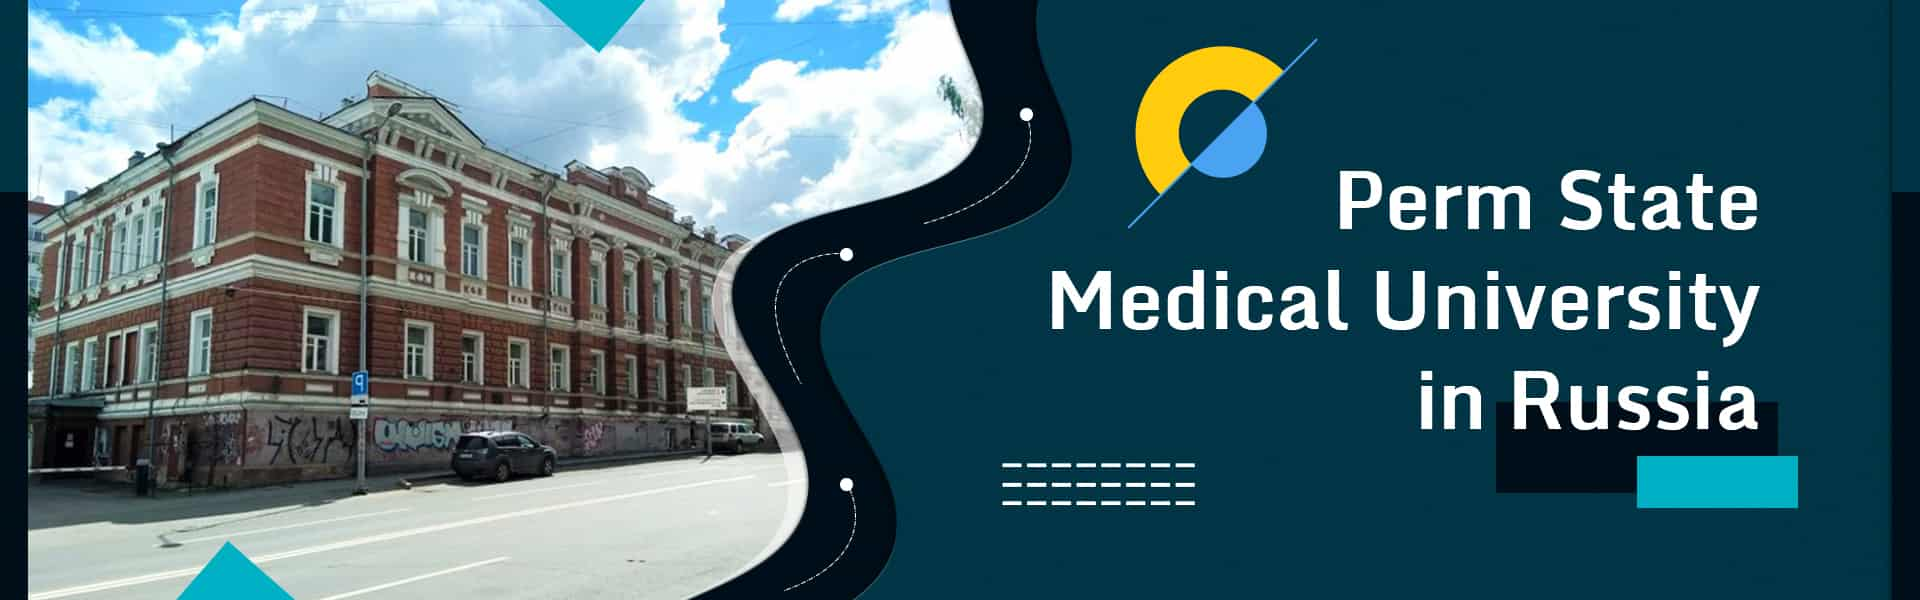 Perm State Medical University MBBS Fees 2021 For Indian Students